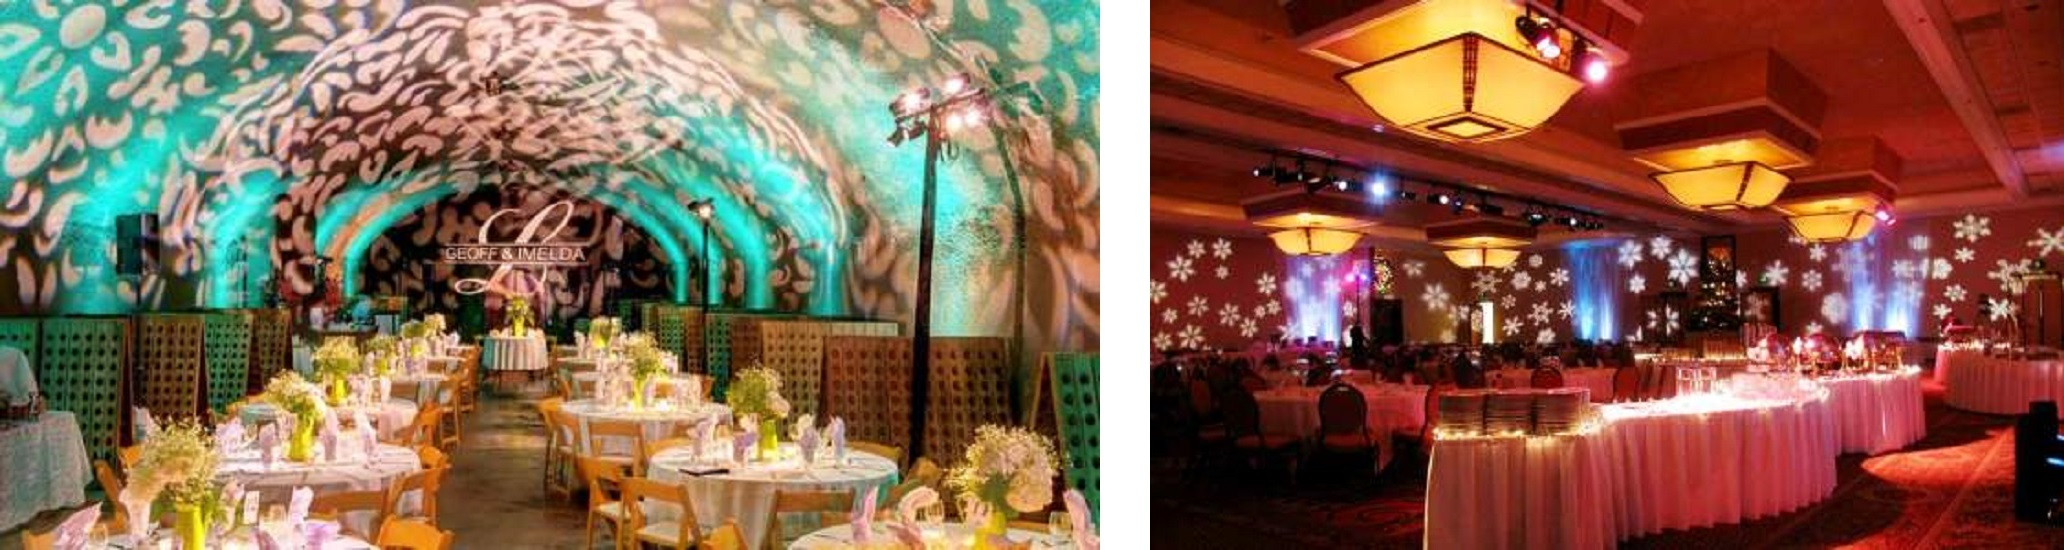 Wall Texture Lighting, Christmas Snow Flake Design, Gobo Monogram at a Houston Wedding or Houston Holiday Party, Houston Christmas Party